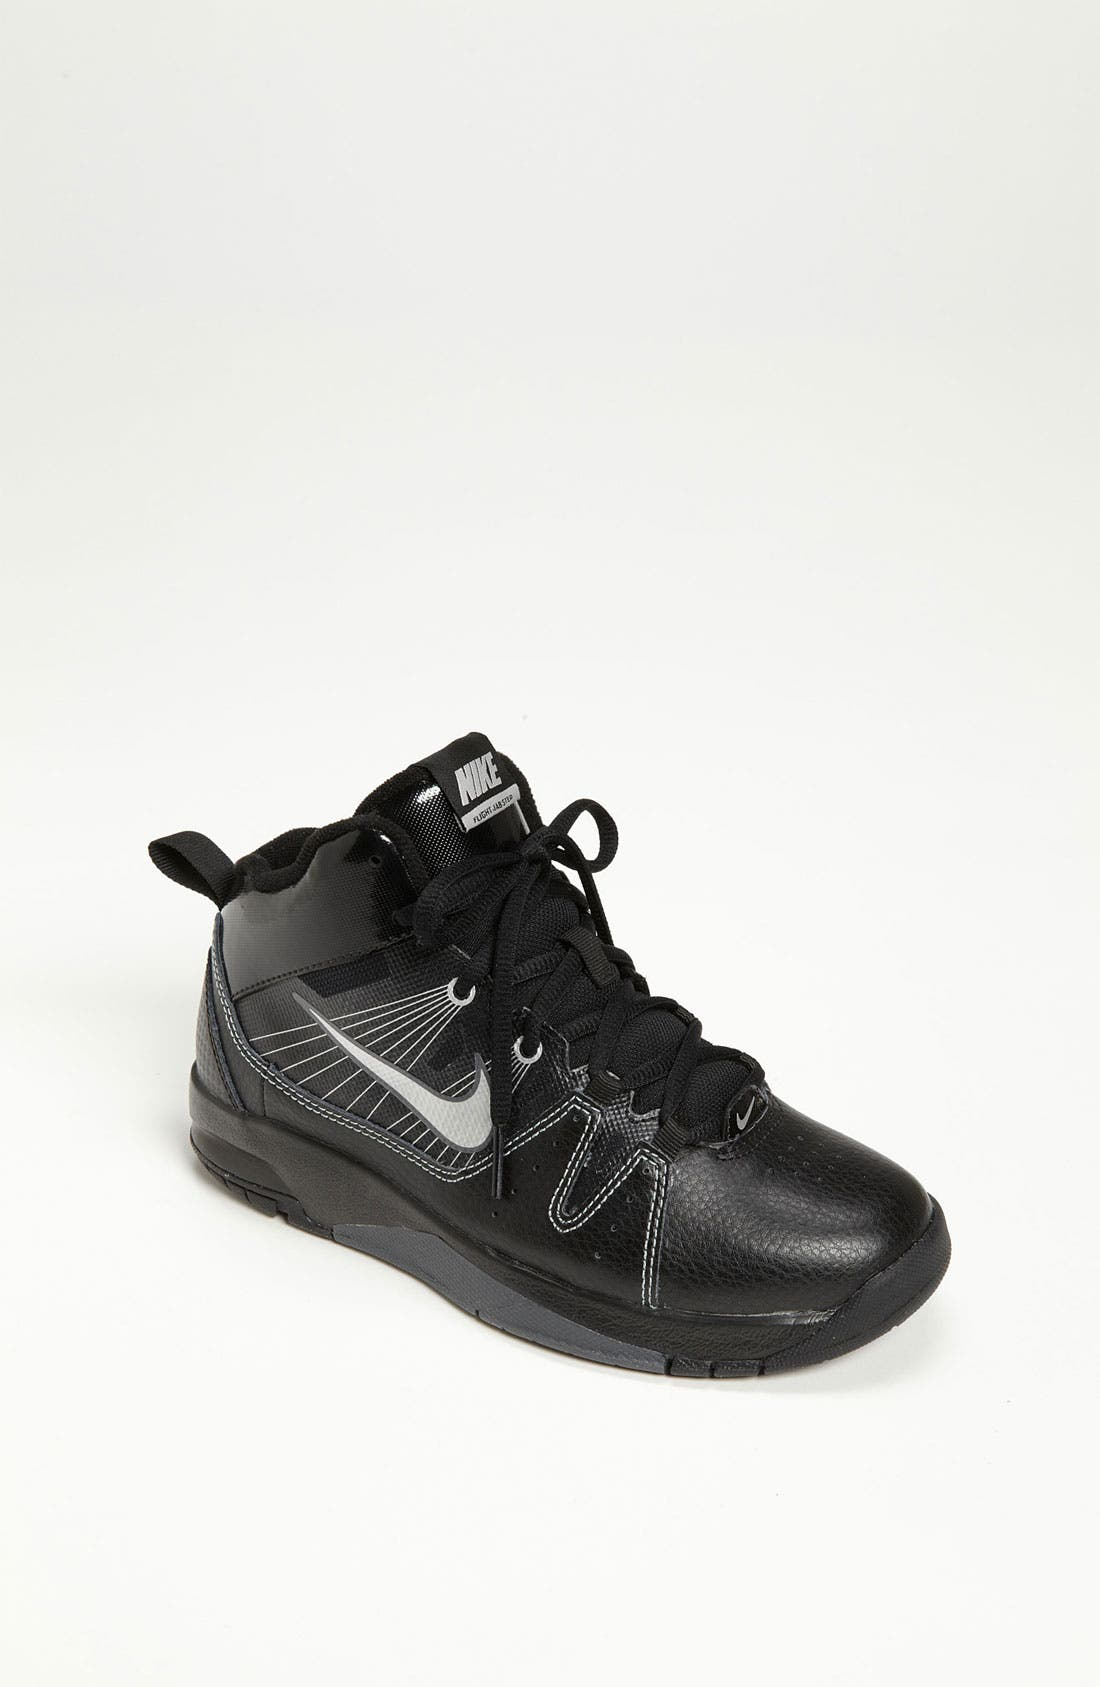 Main Image - Nike 'Flight Jab Step' Basketball Shoe (Toddler, Little Kid & Big Kid)